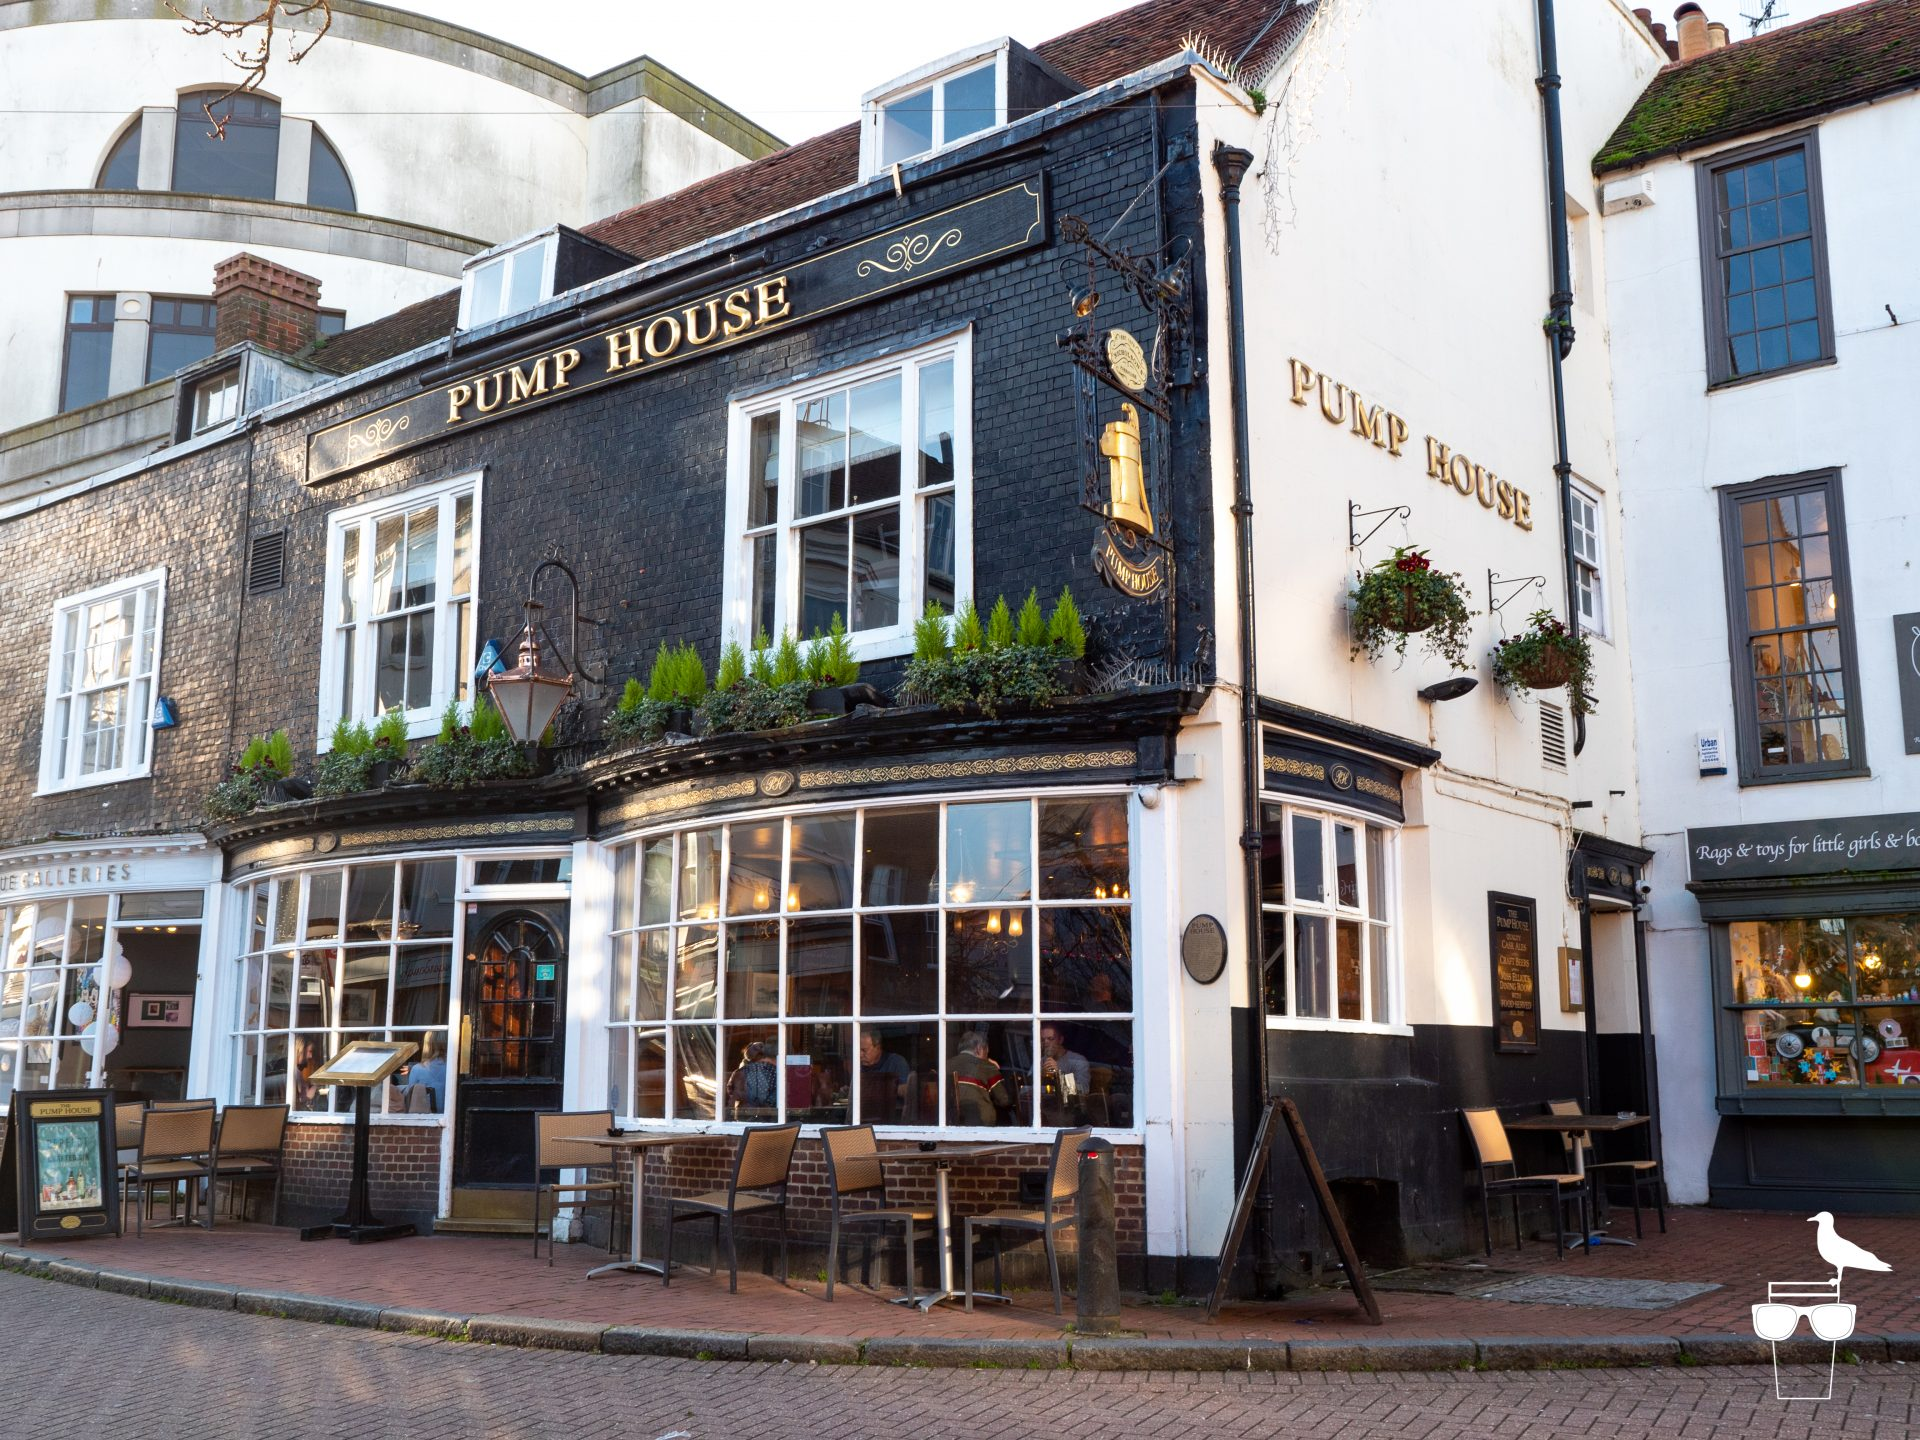 Pump House pub brighton, front, outside, alt angle